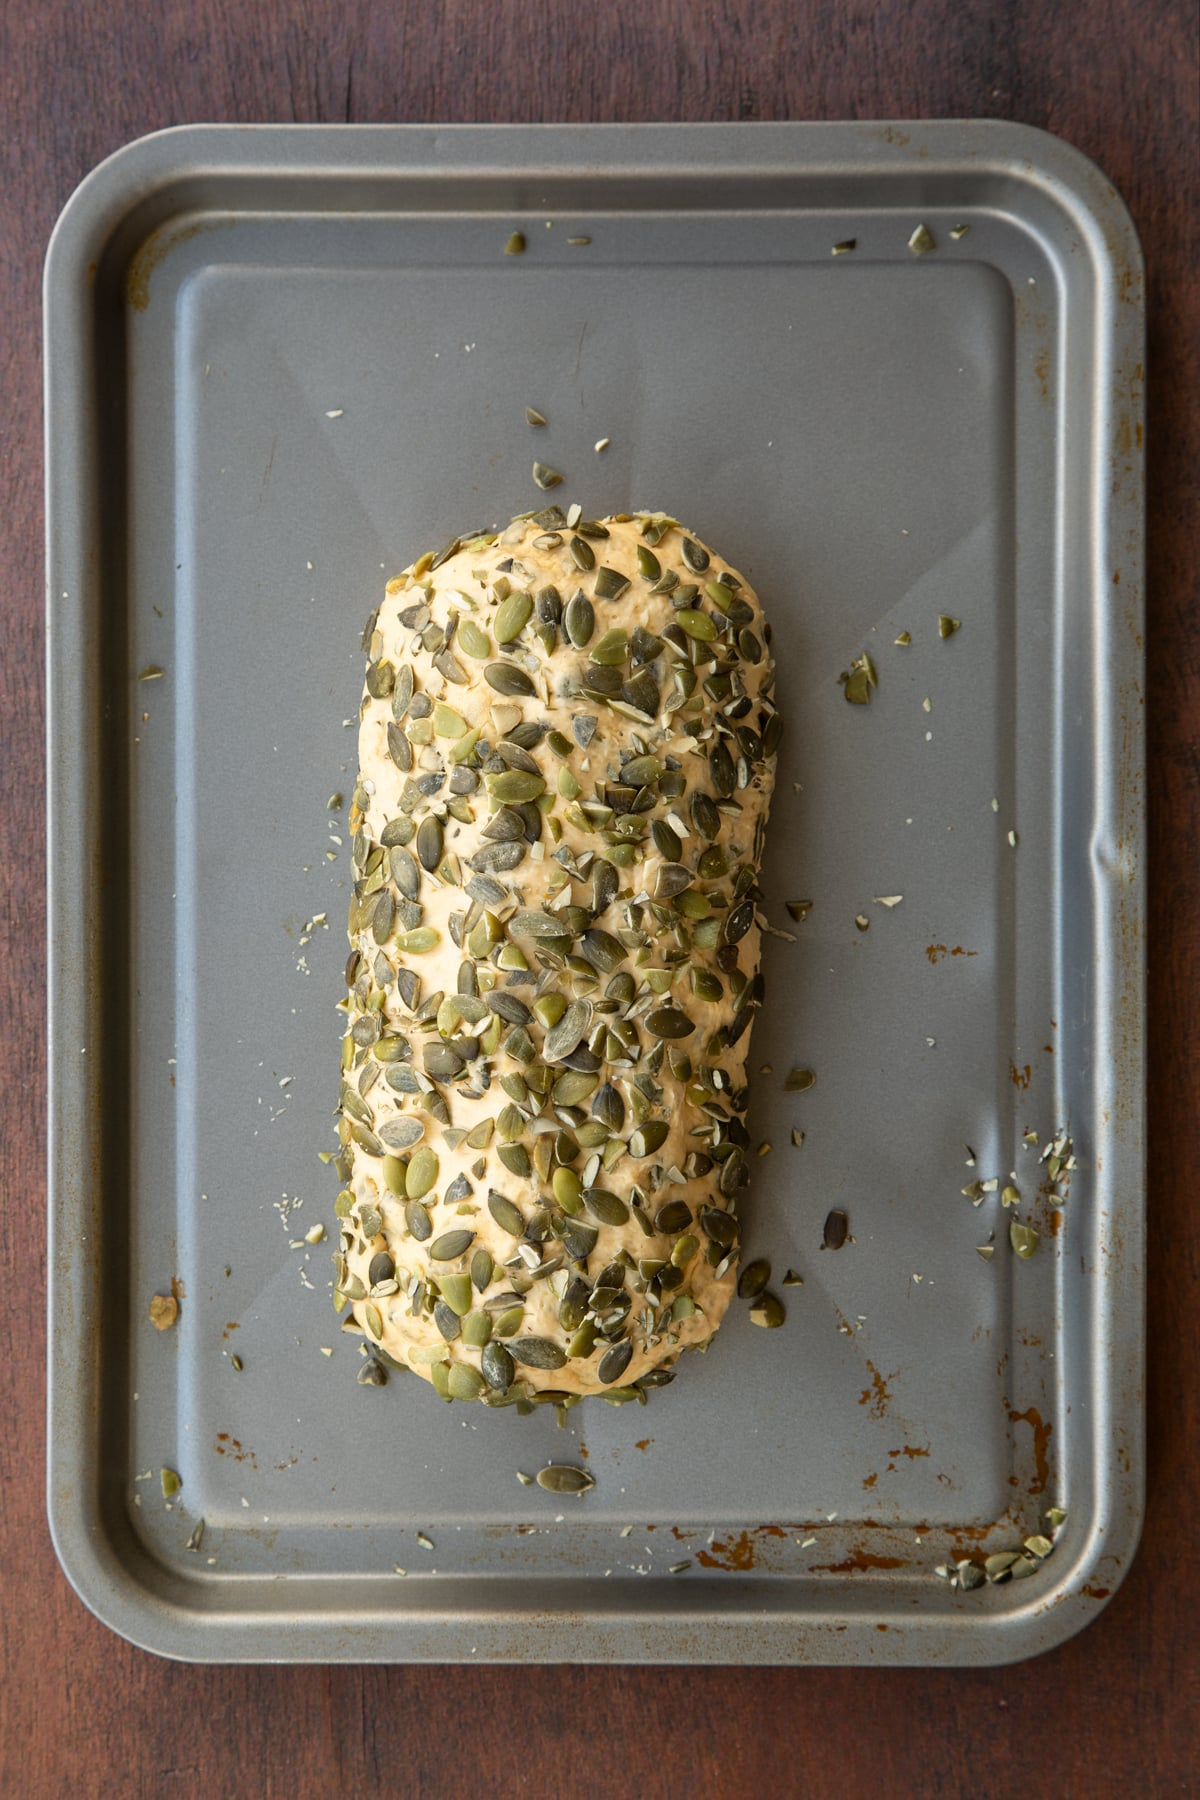 A roll of pumpkin seed bread dough, rolled in pumpkin seeds on a metal tray.